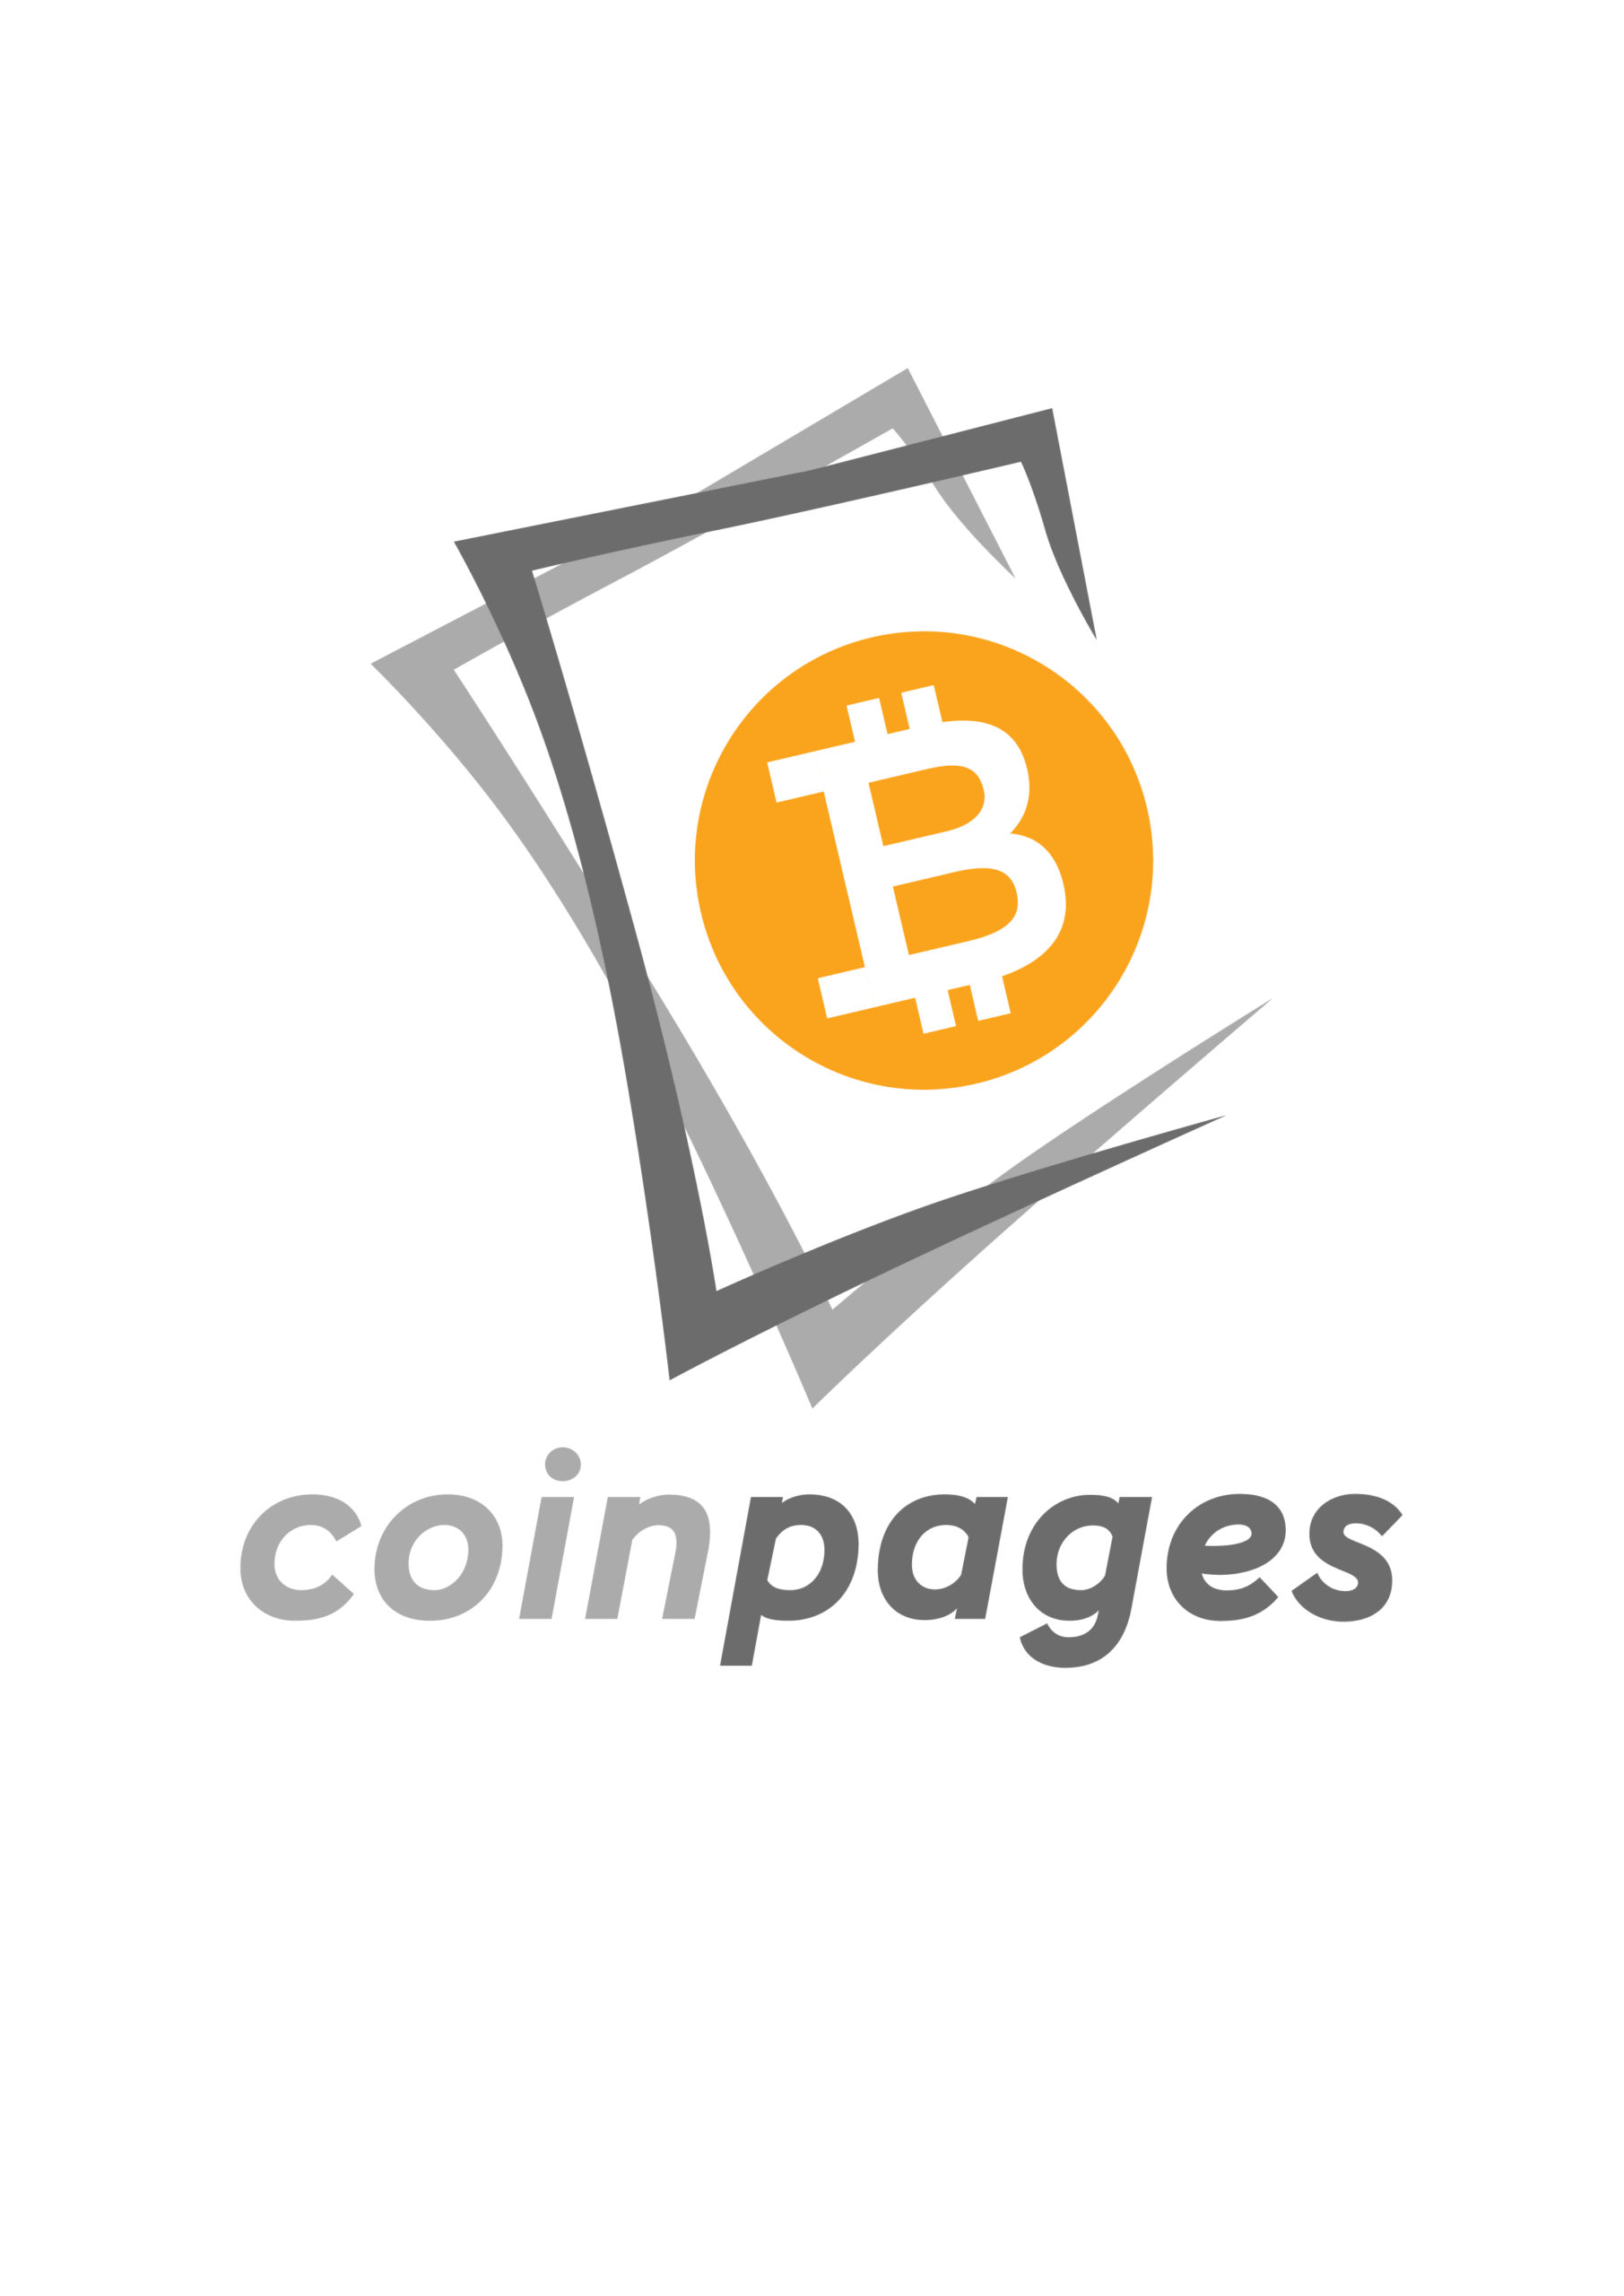 coinpages Logo Square